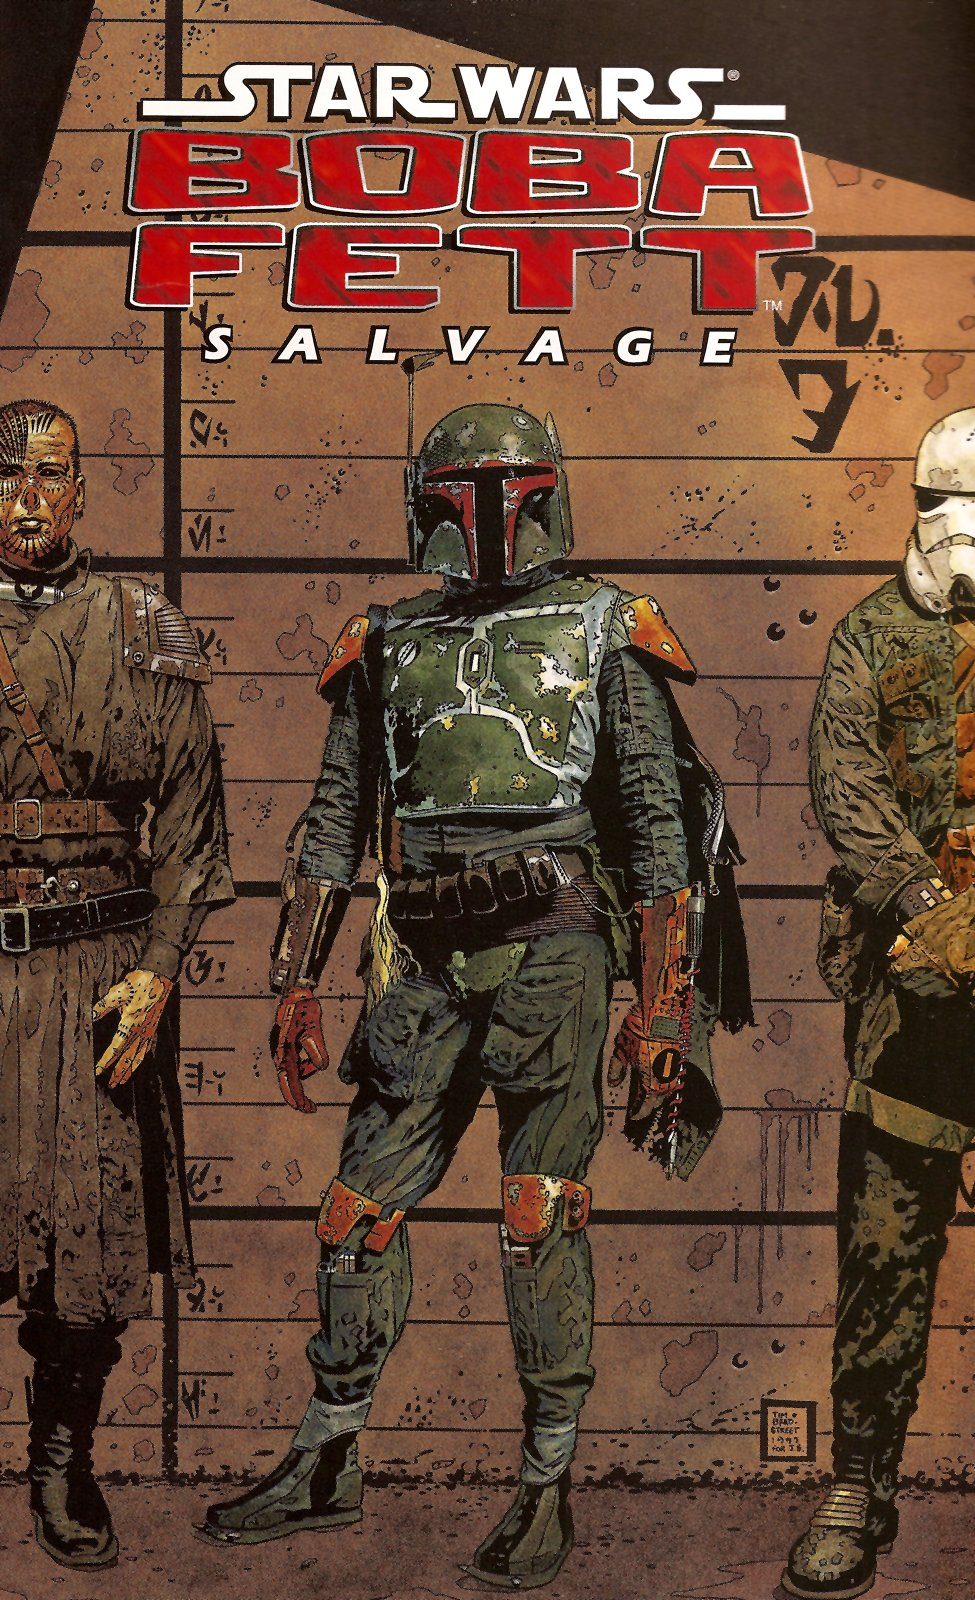 Star Wars Boba Fett Salvage Comic Book Back Issues by A1 Comix